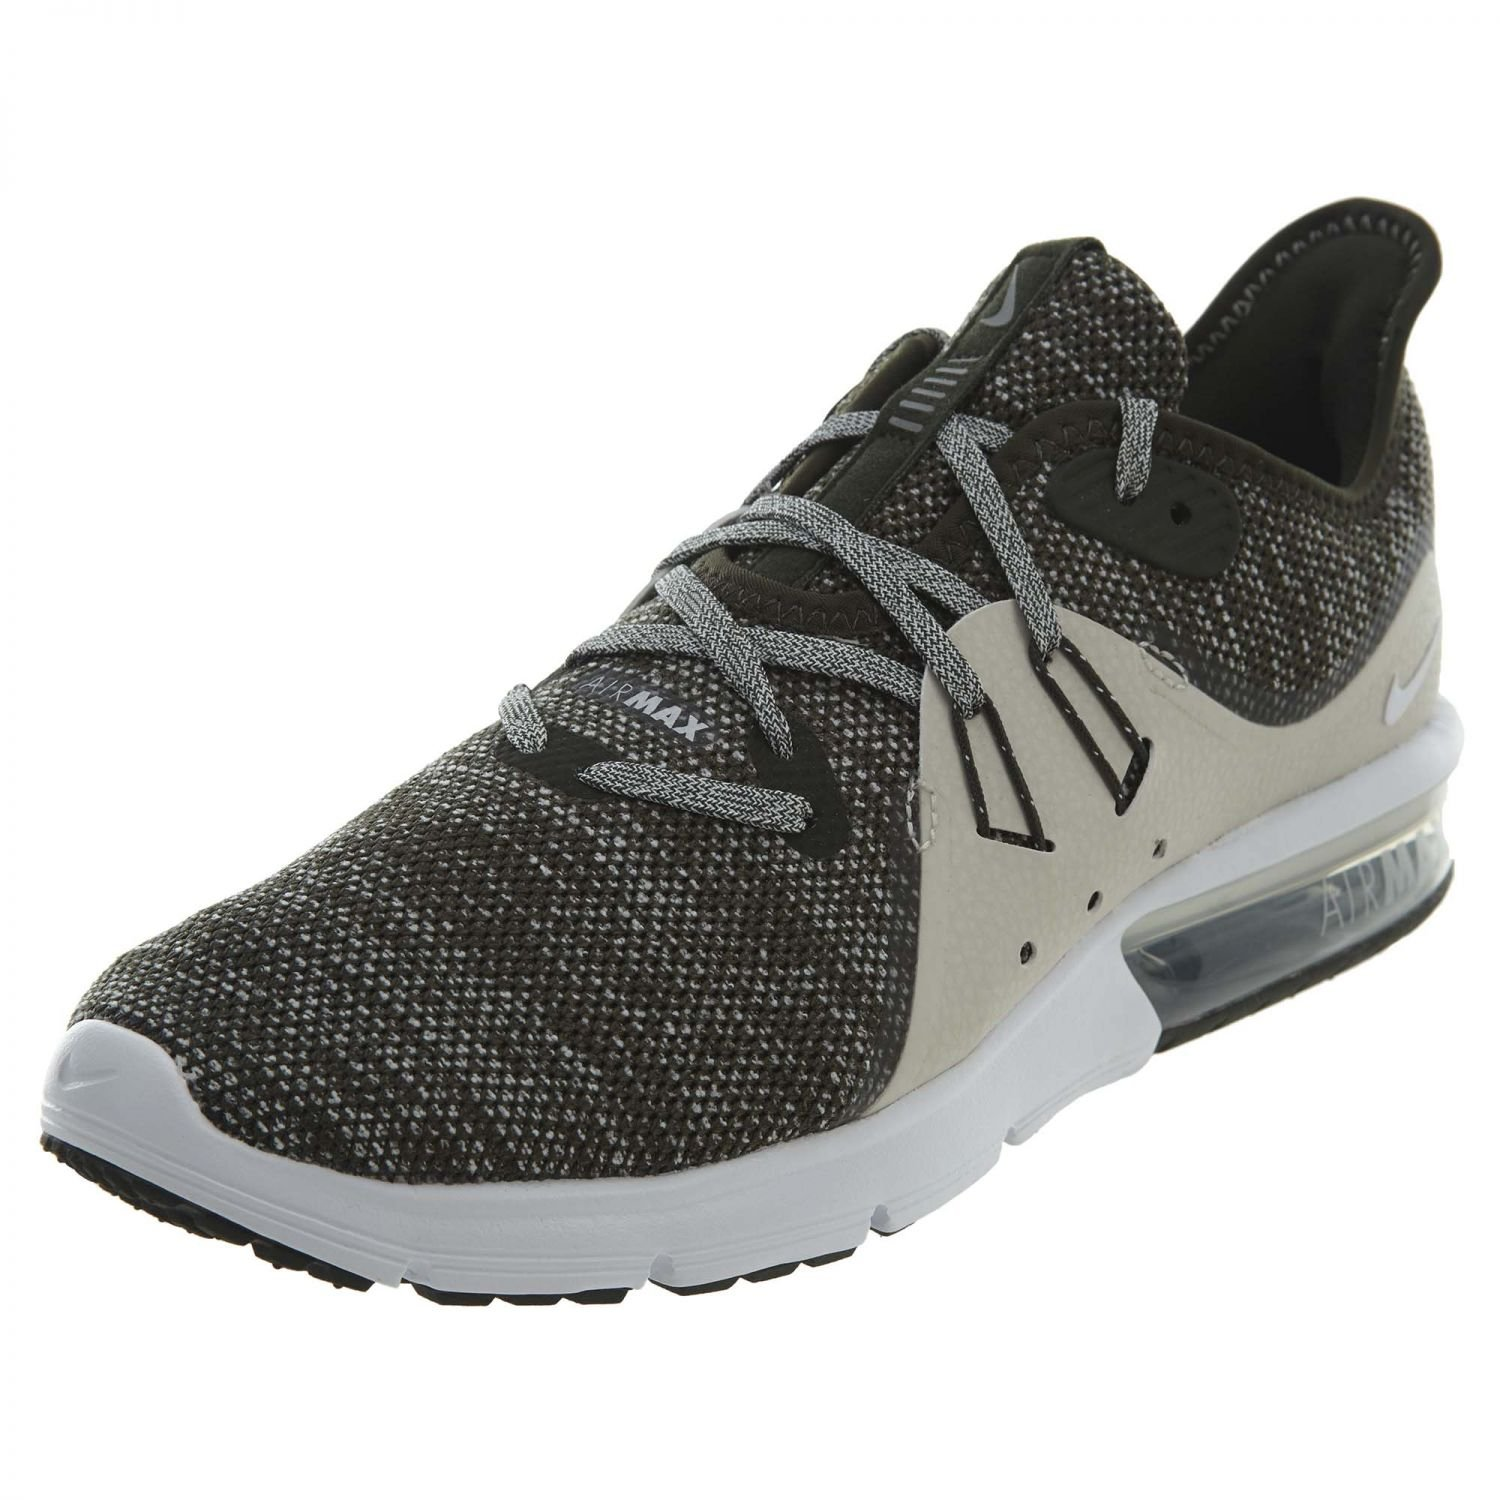 A buon mercato all'ingrosso Nike Air Max Sequent 3 Uomo Running Sequoia/Summit Bianco